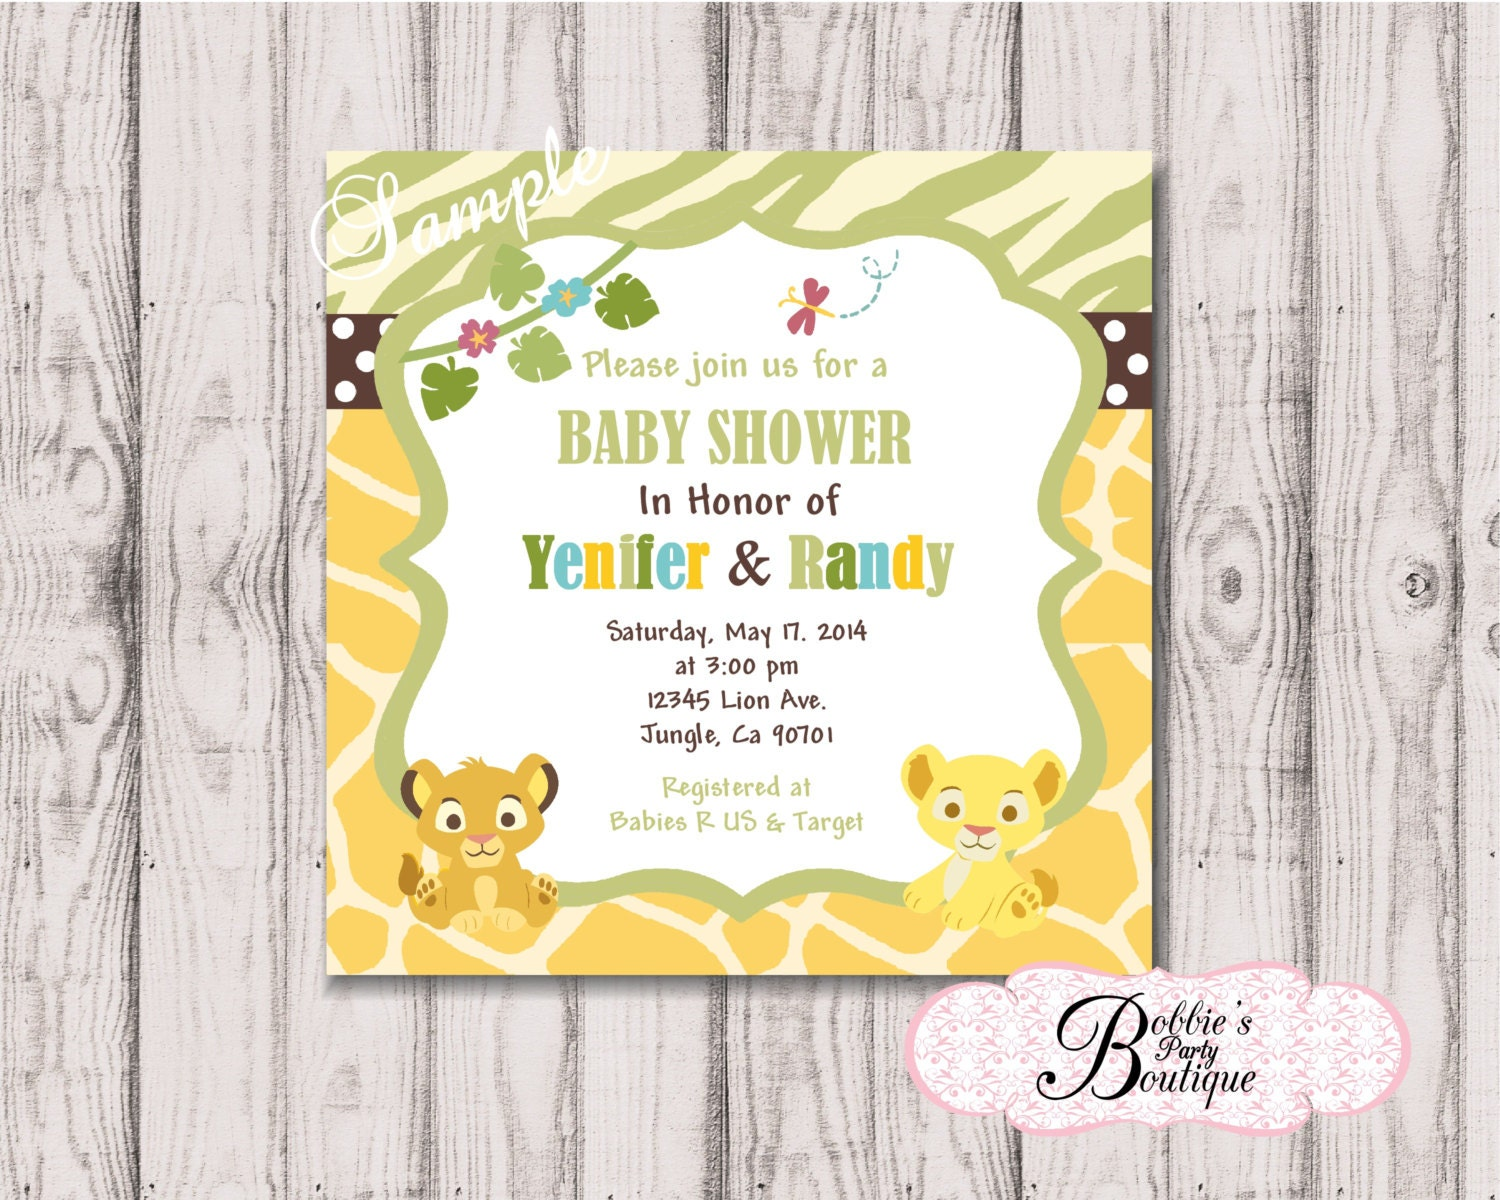 It's just an image of Priceless Printable Lion King Baby Shower Invitations